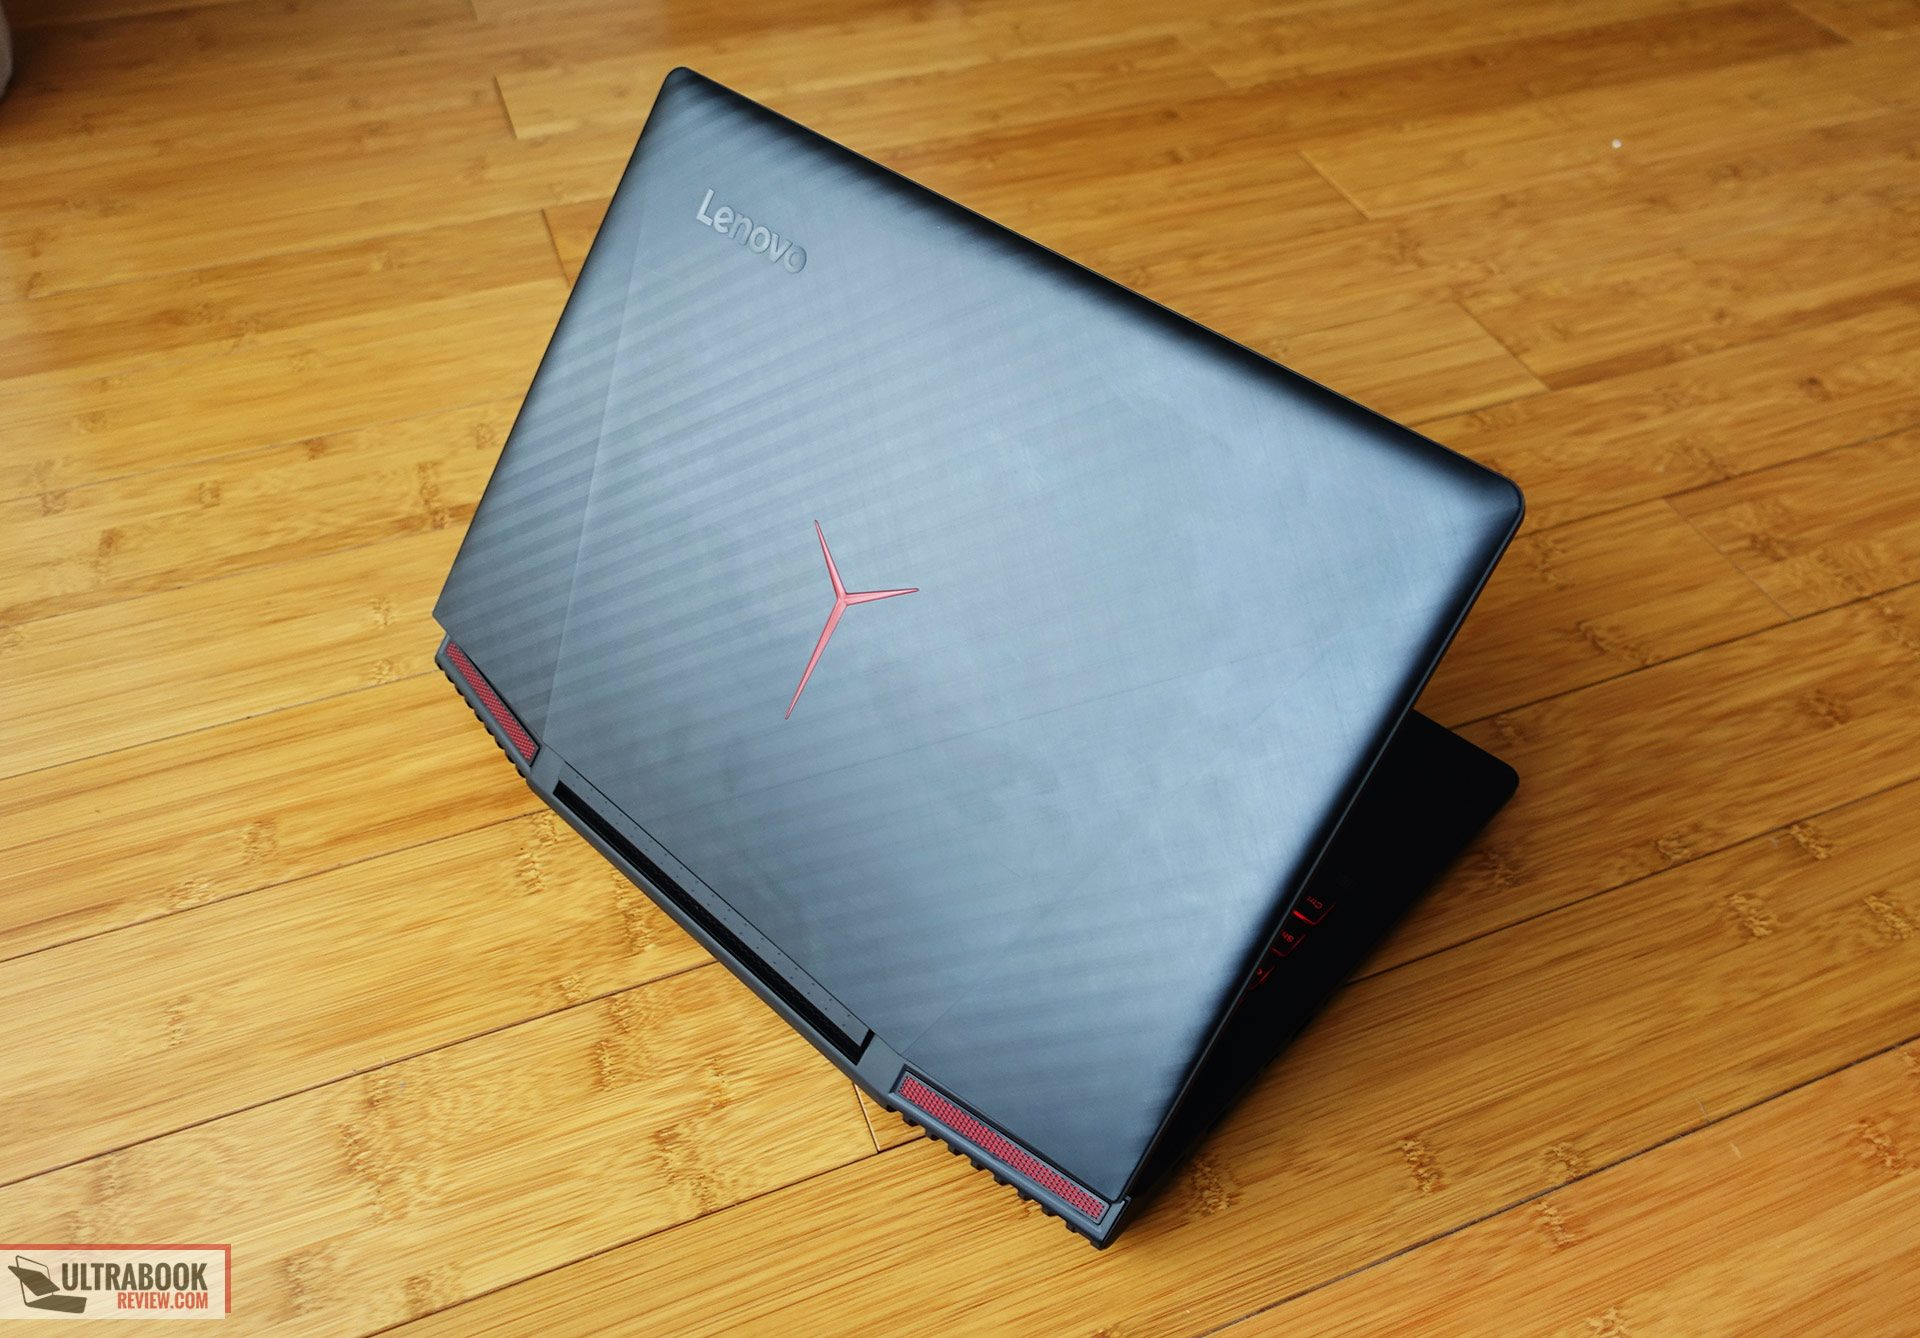 Lenovo Legion Y720 review (i7-7700HQ, GTX 1060) - solid mid-range